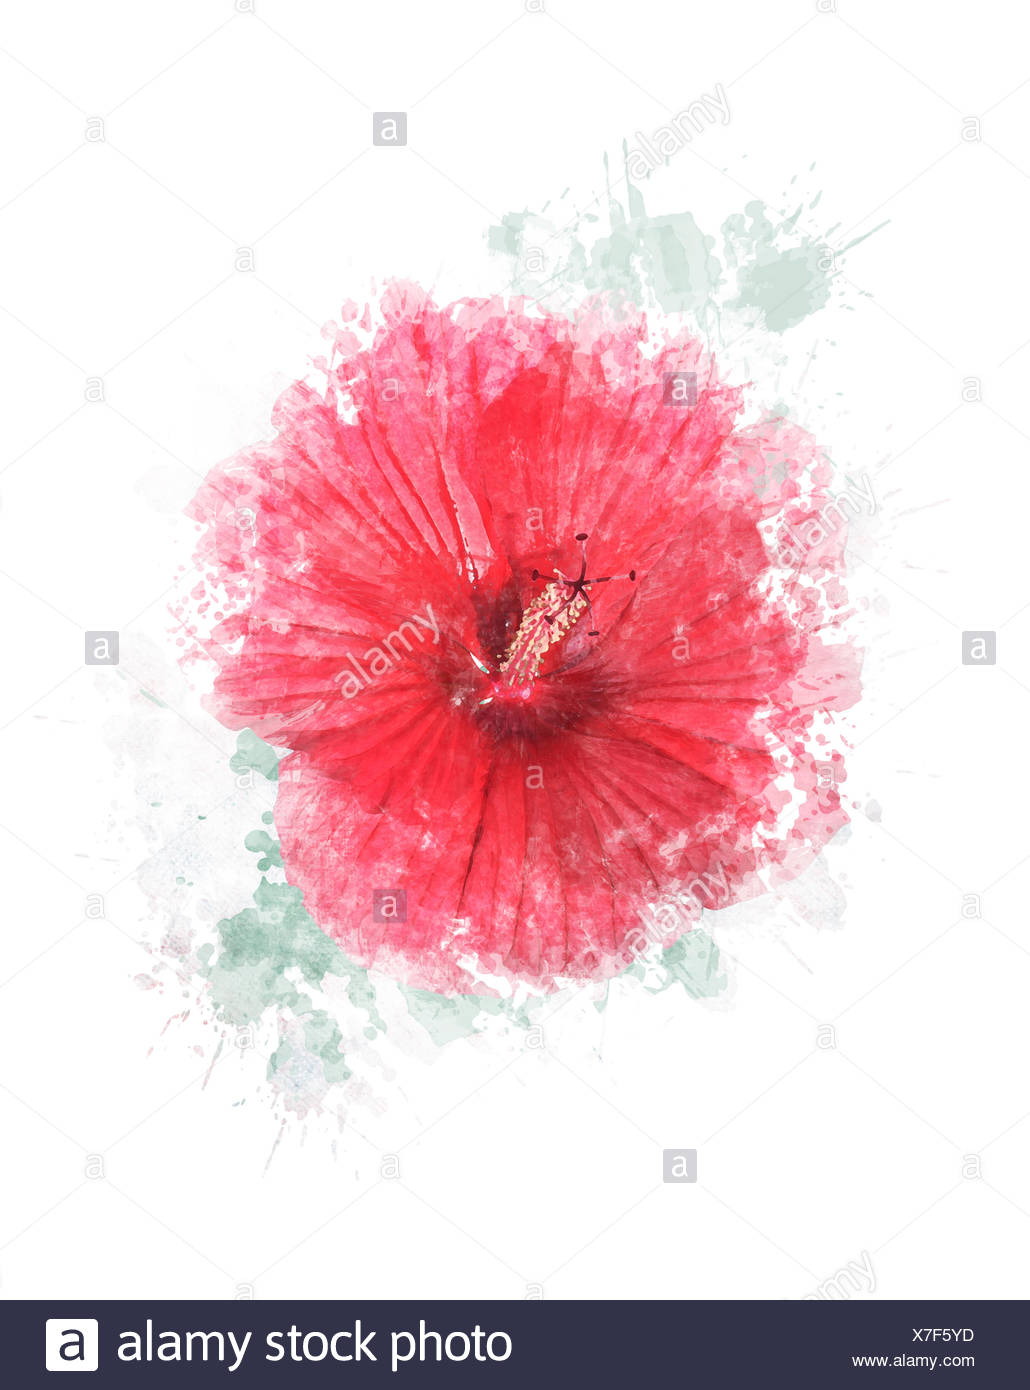 Watercolor Image Of Hibiscus Flower Stock Photo 280002449 Alamy